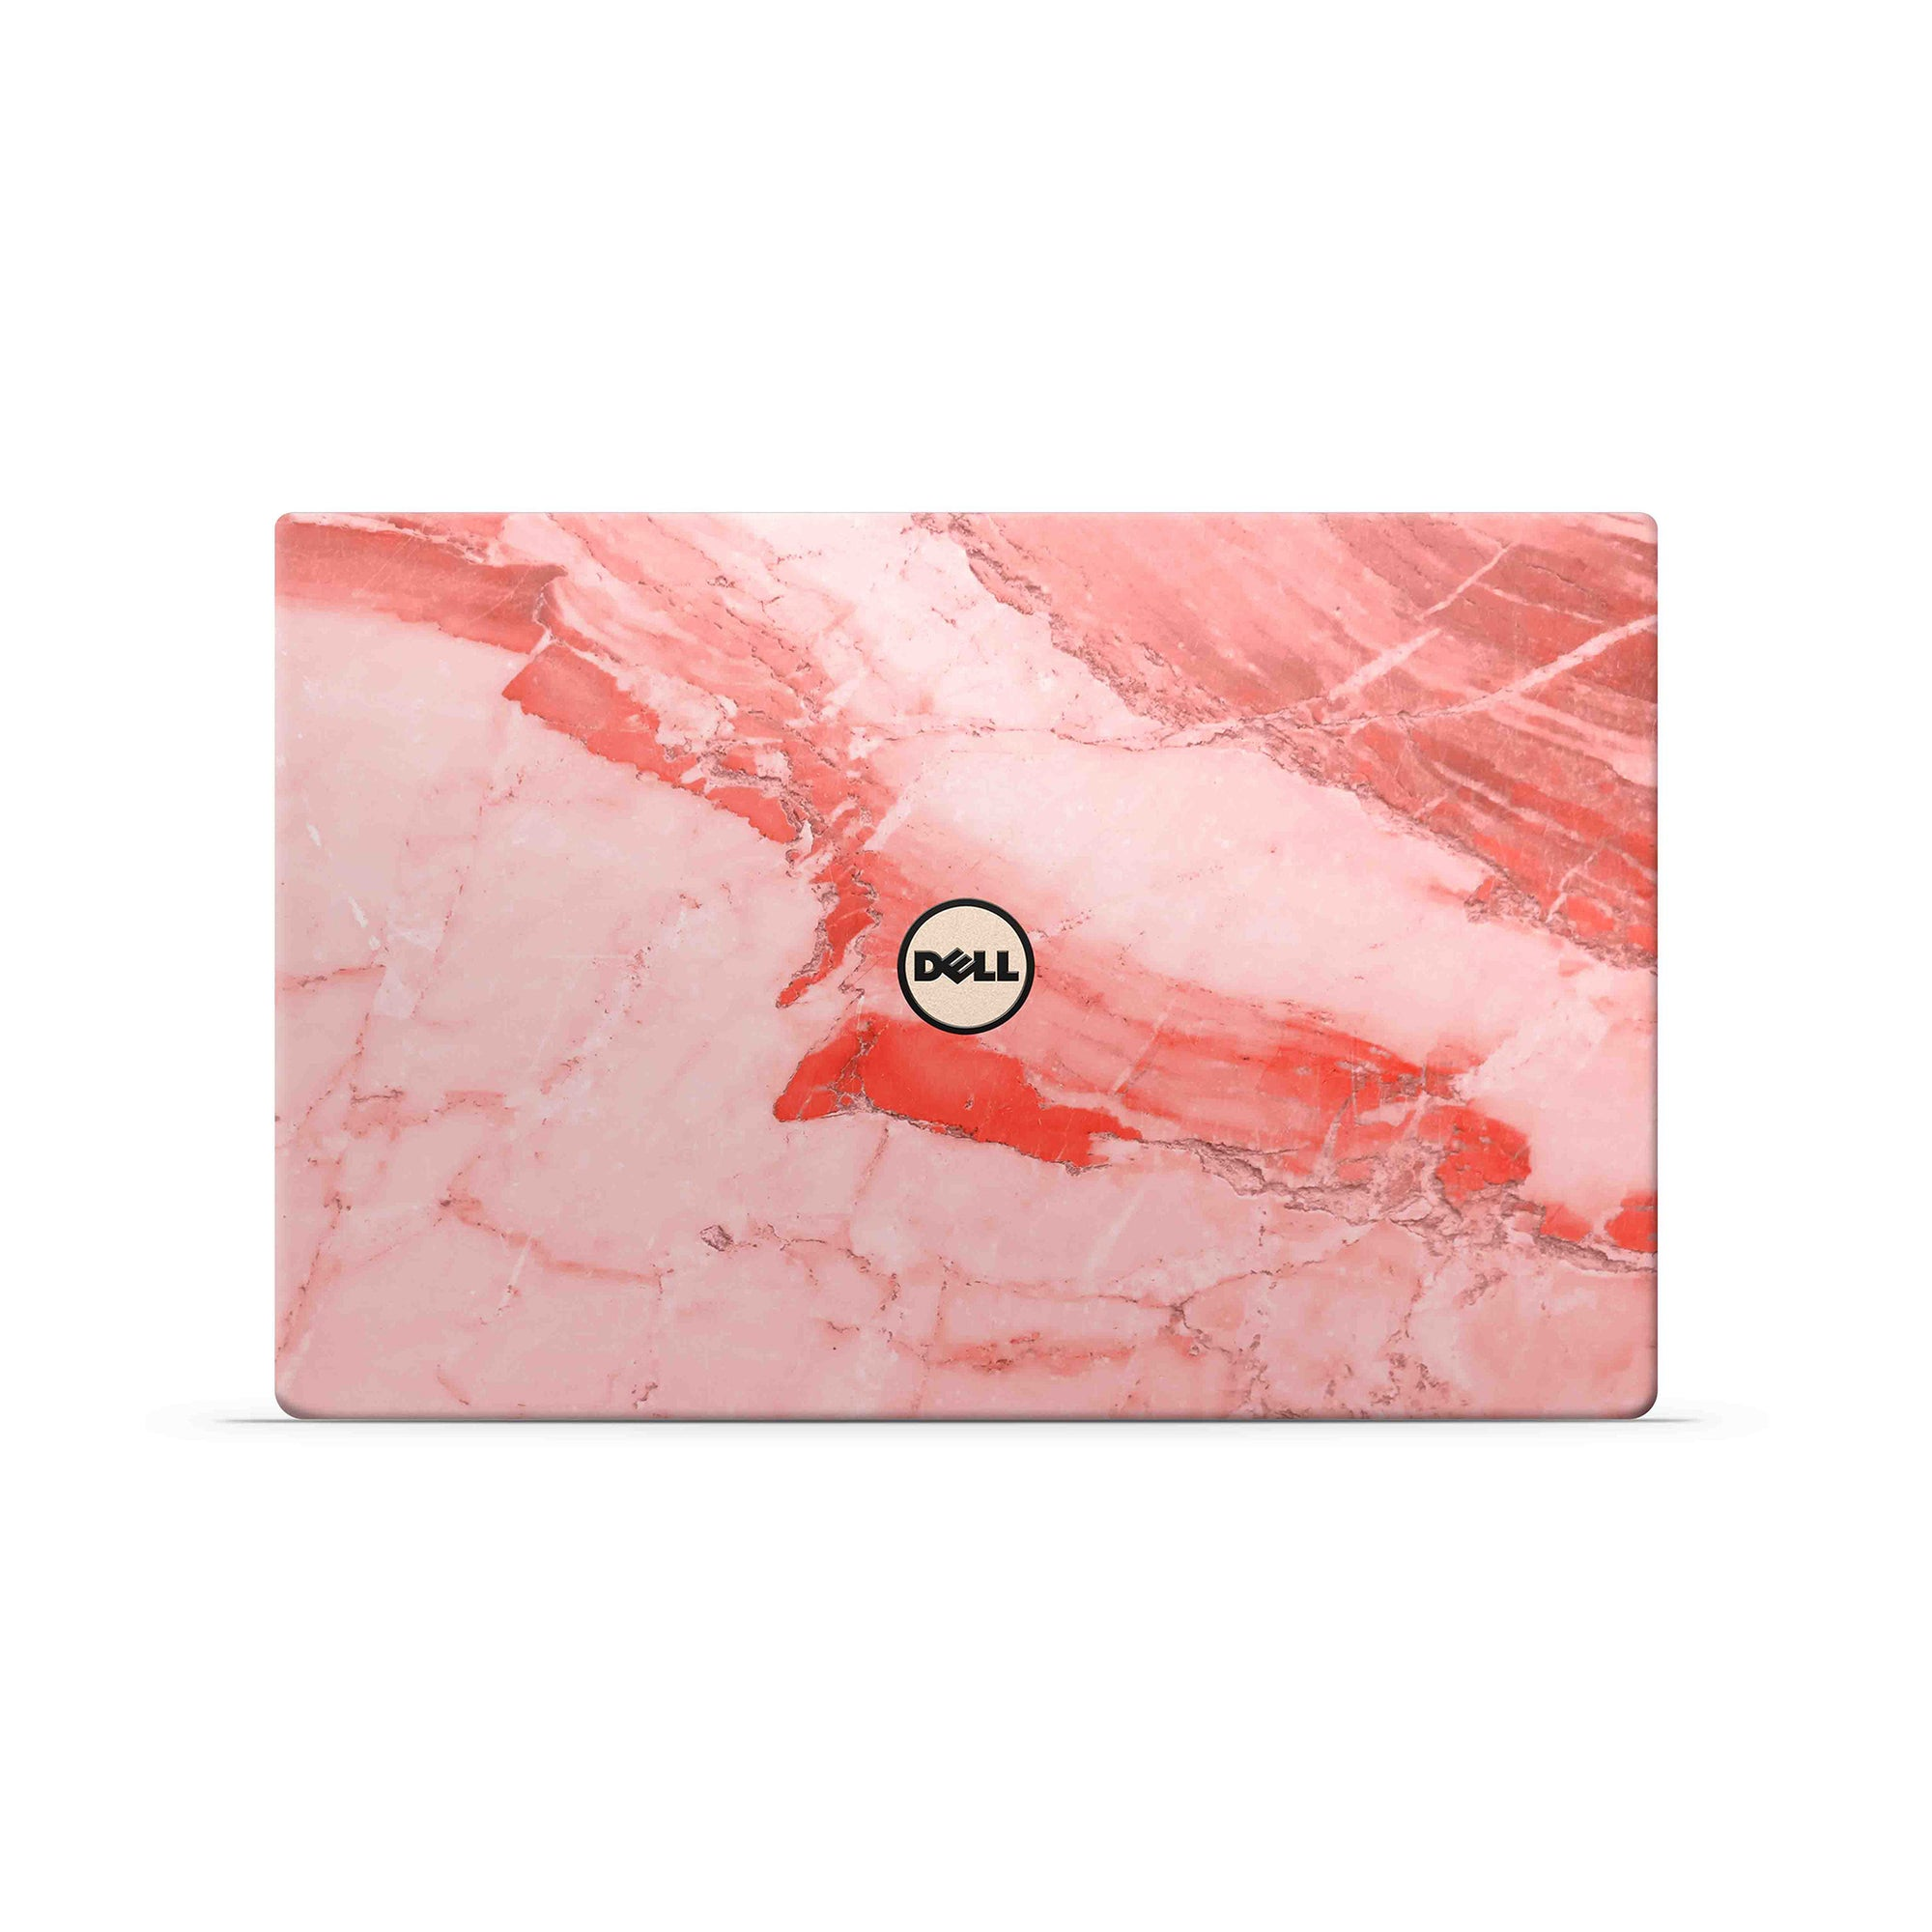 Coral Marble XPS 15 (7590) Skin